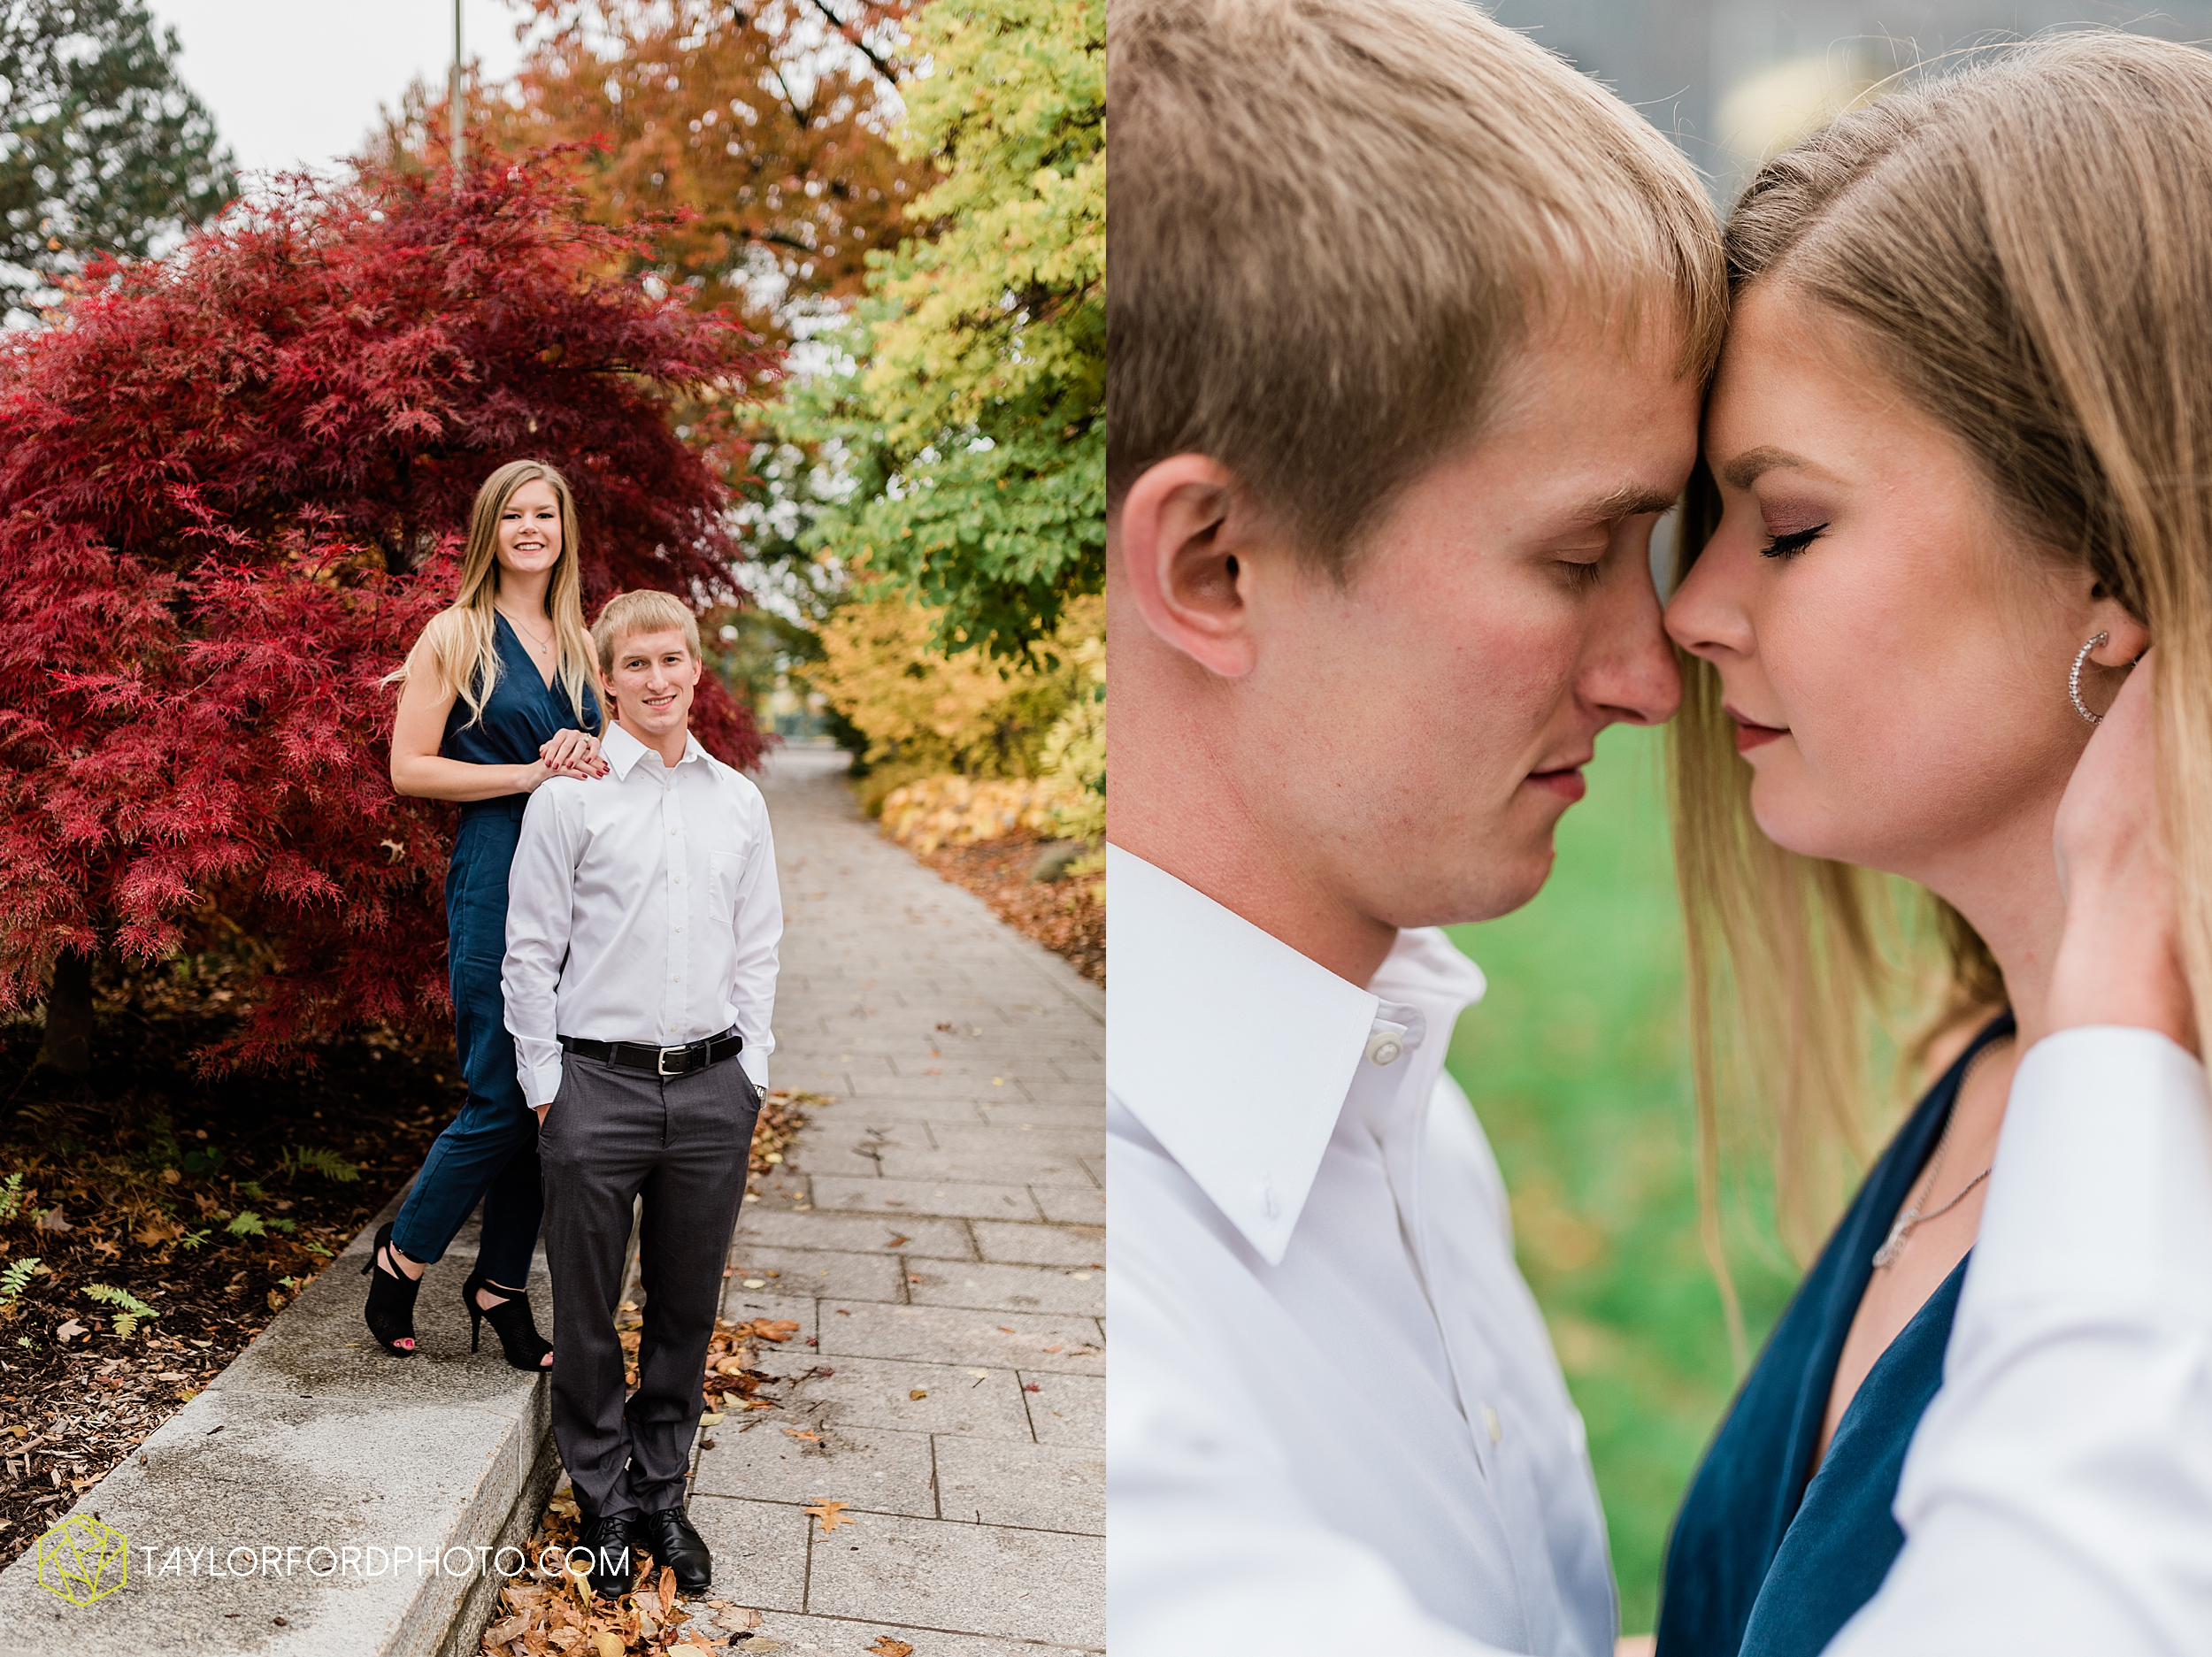 joce-chris-downtown-toledo-museum-of-art-engagement-fall-photographer-taylor-ford-photography_1474.jpg